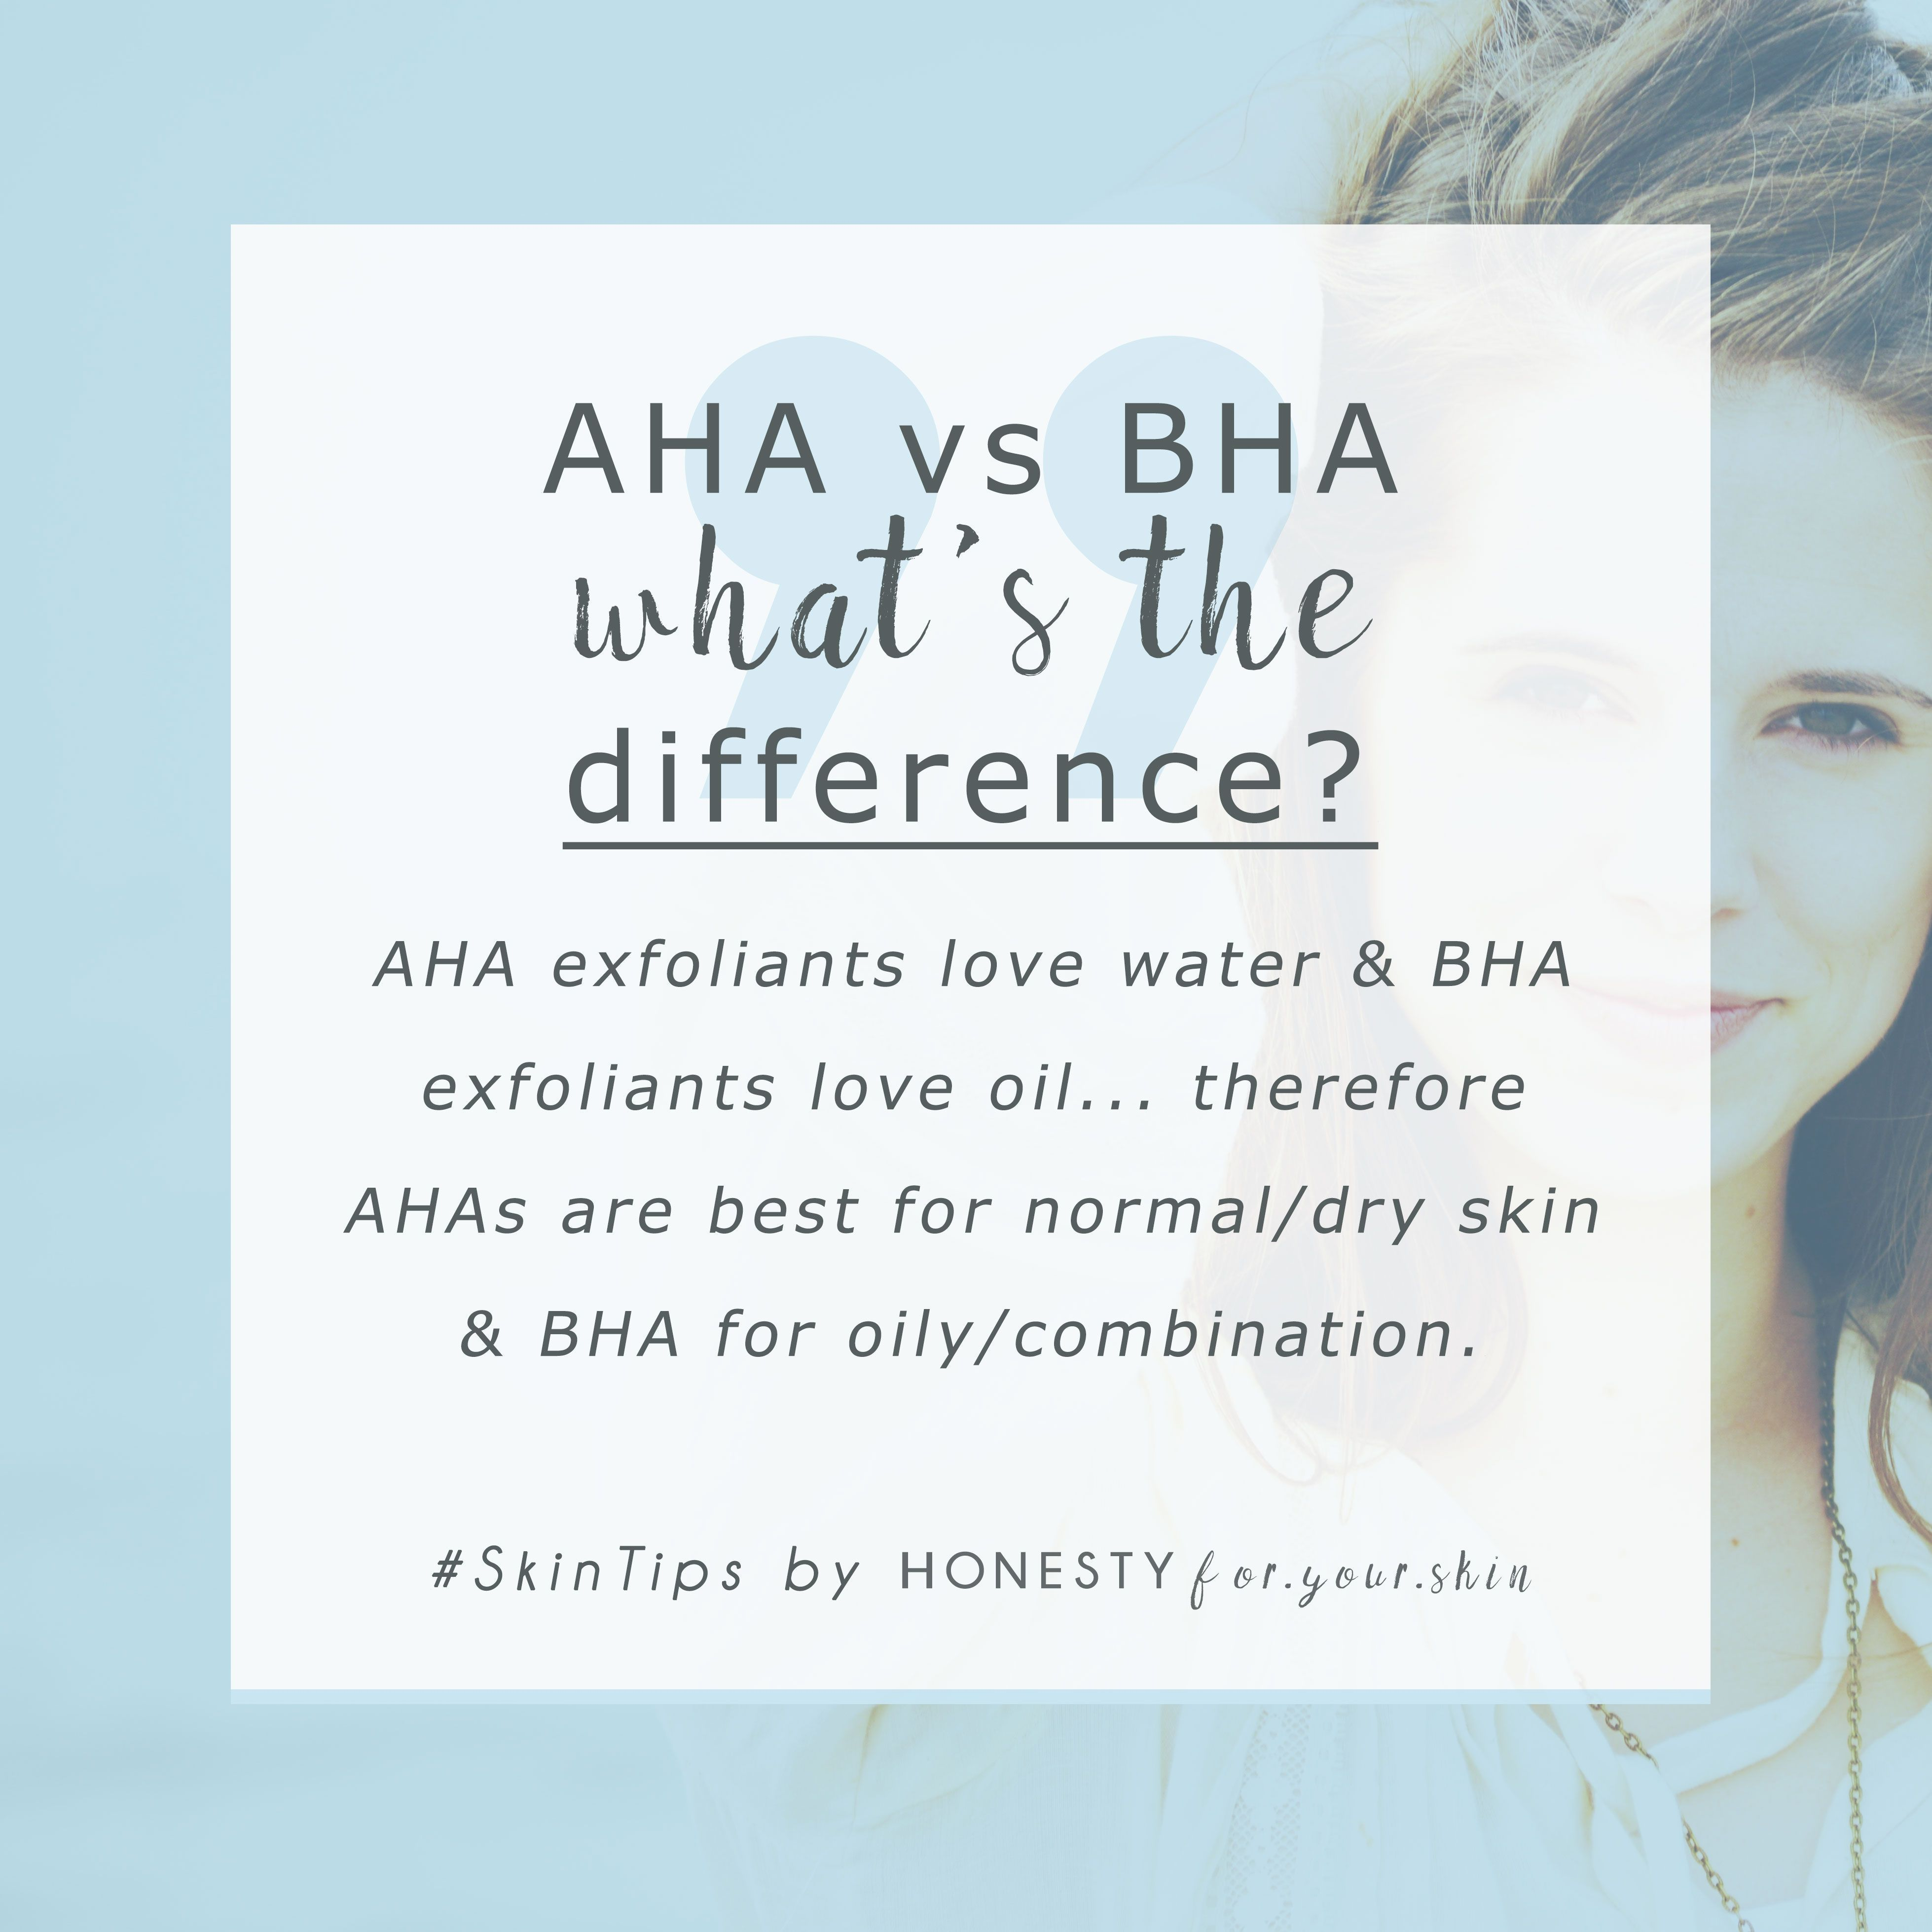 Aha Vs Bha Not Sure About The Difference Both Can Exfoliate Your Skin But Only 1 Is Perfect For Your Skin Type It S Eas Skin Tips How To Grow Eyebrows Skin